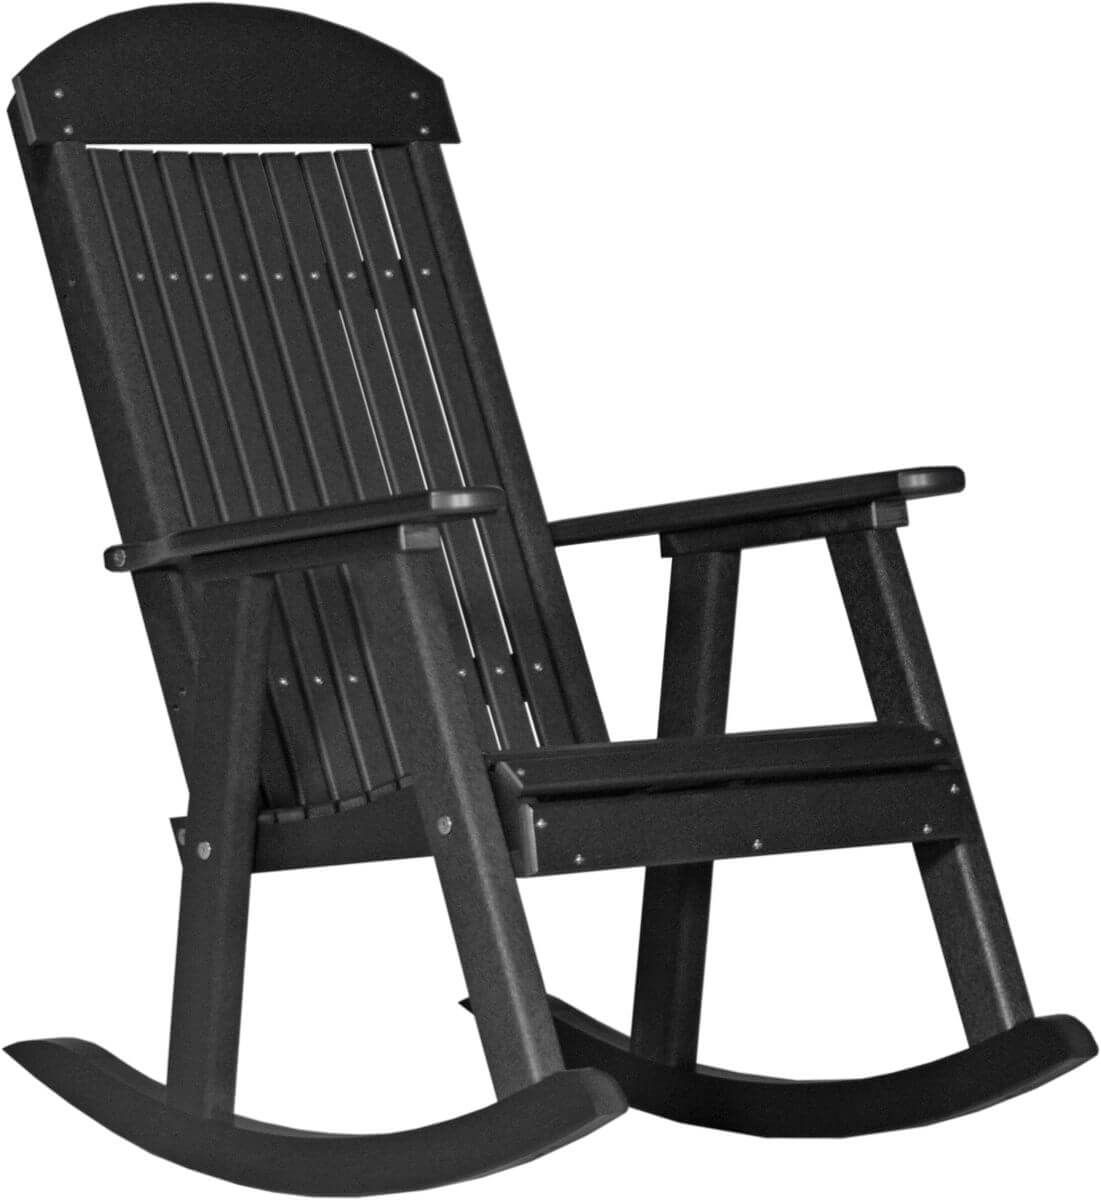 Black Stockton Porch Rocker